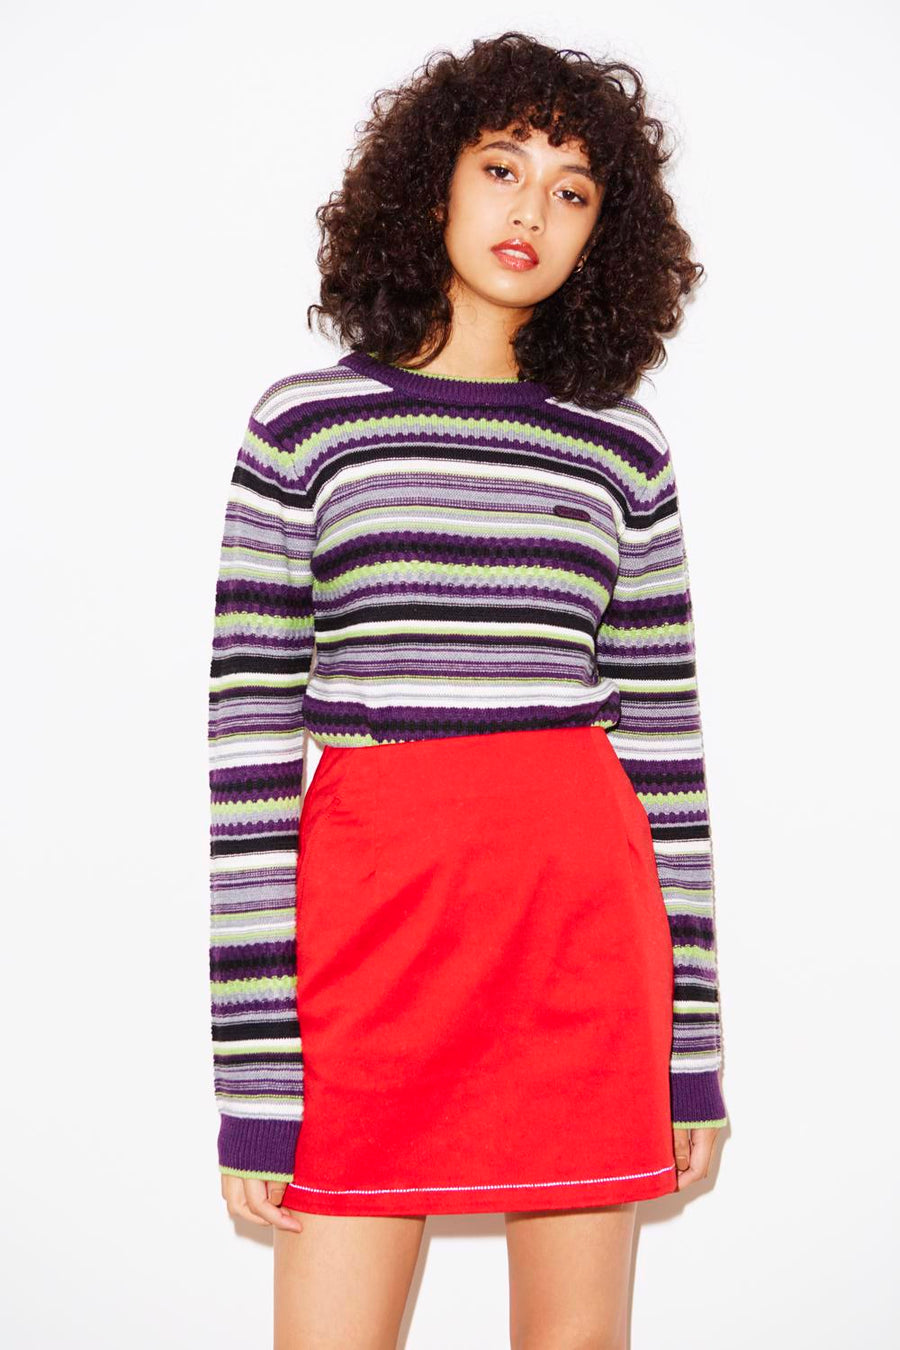 MULTI STRIPE CREWNECK KNIT TOP, HOODIES & SWEATERS, X-Girl